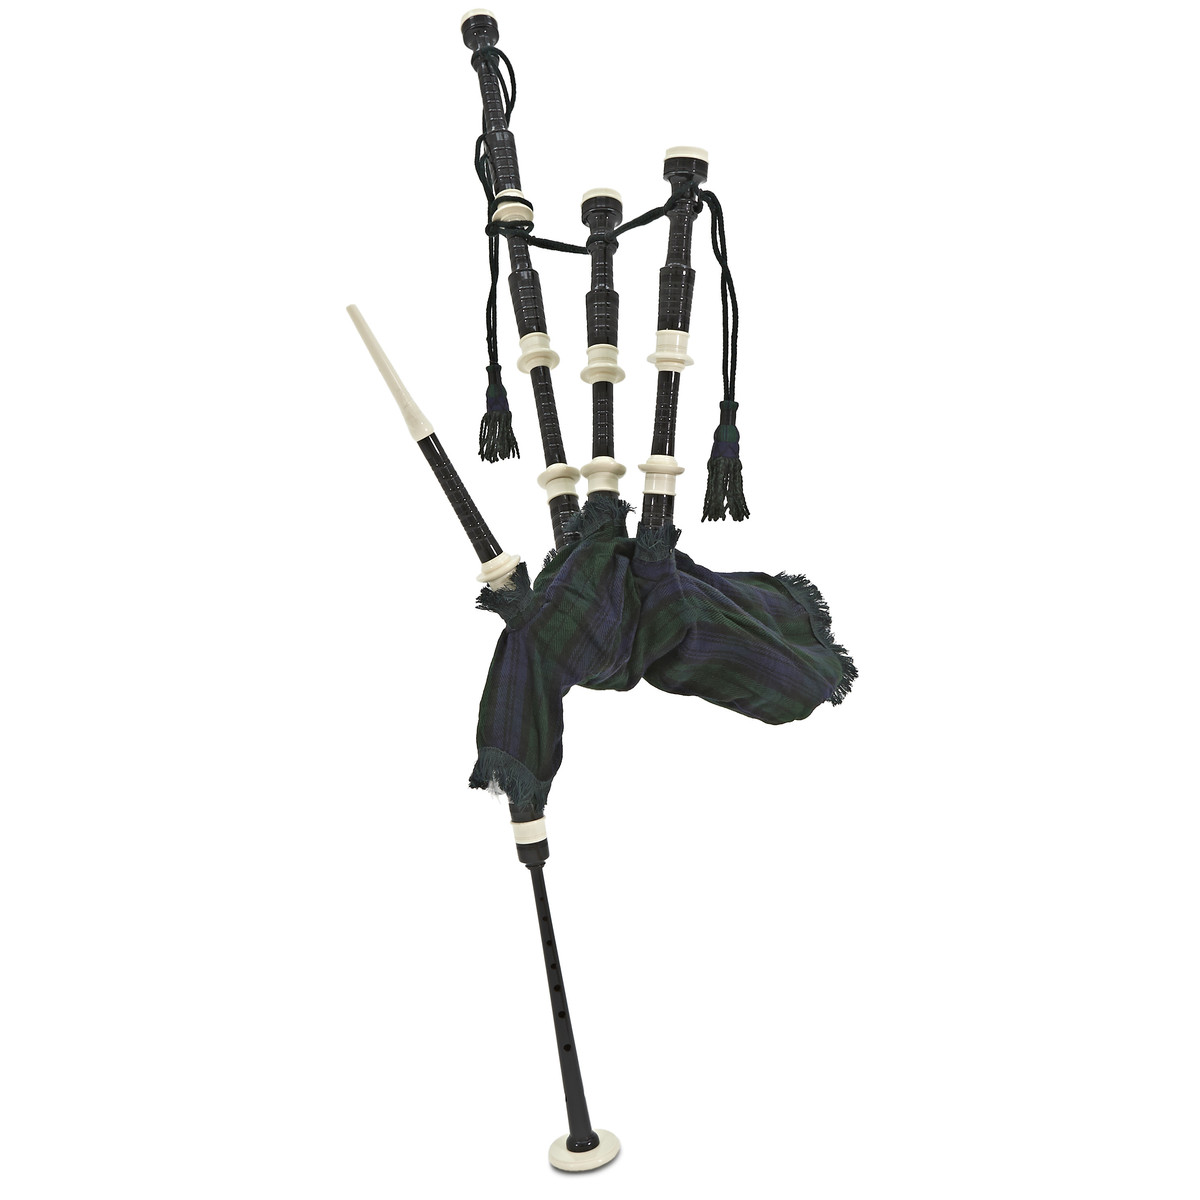 Image of Deluxe Bagpipes by Gear4music Black Watch